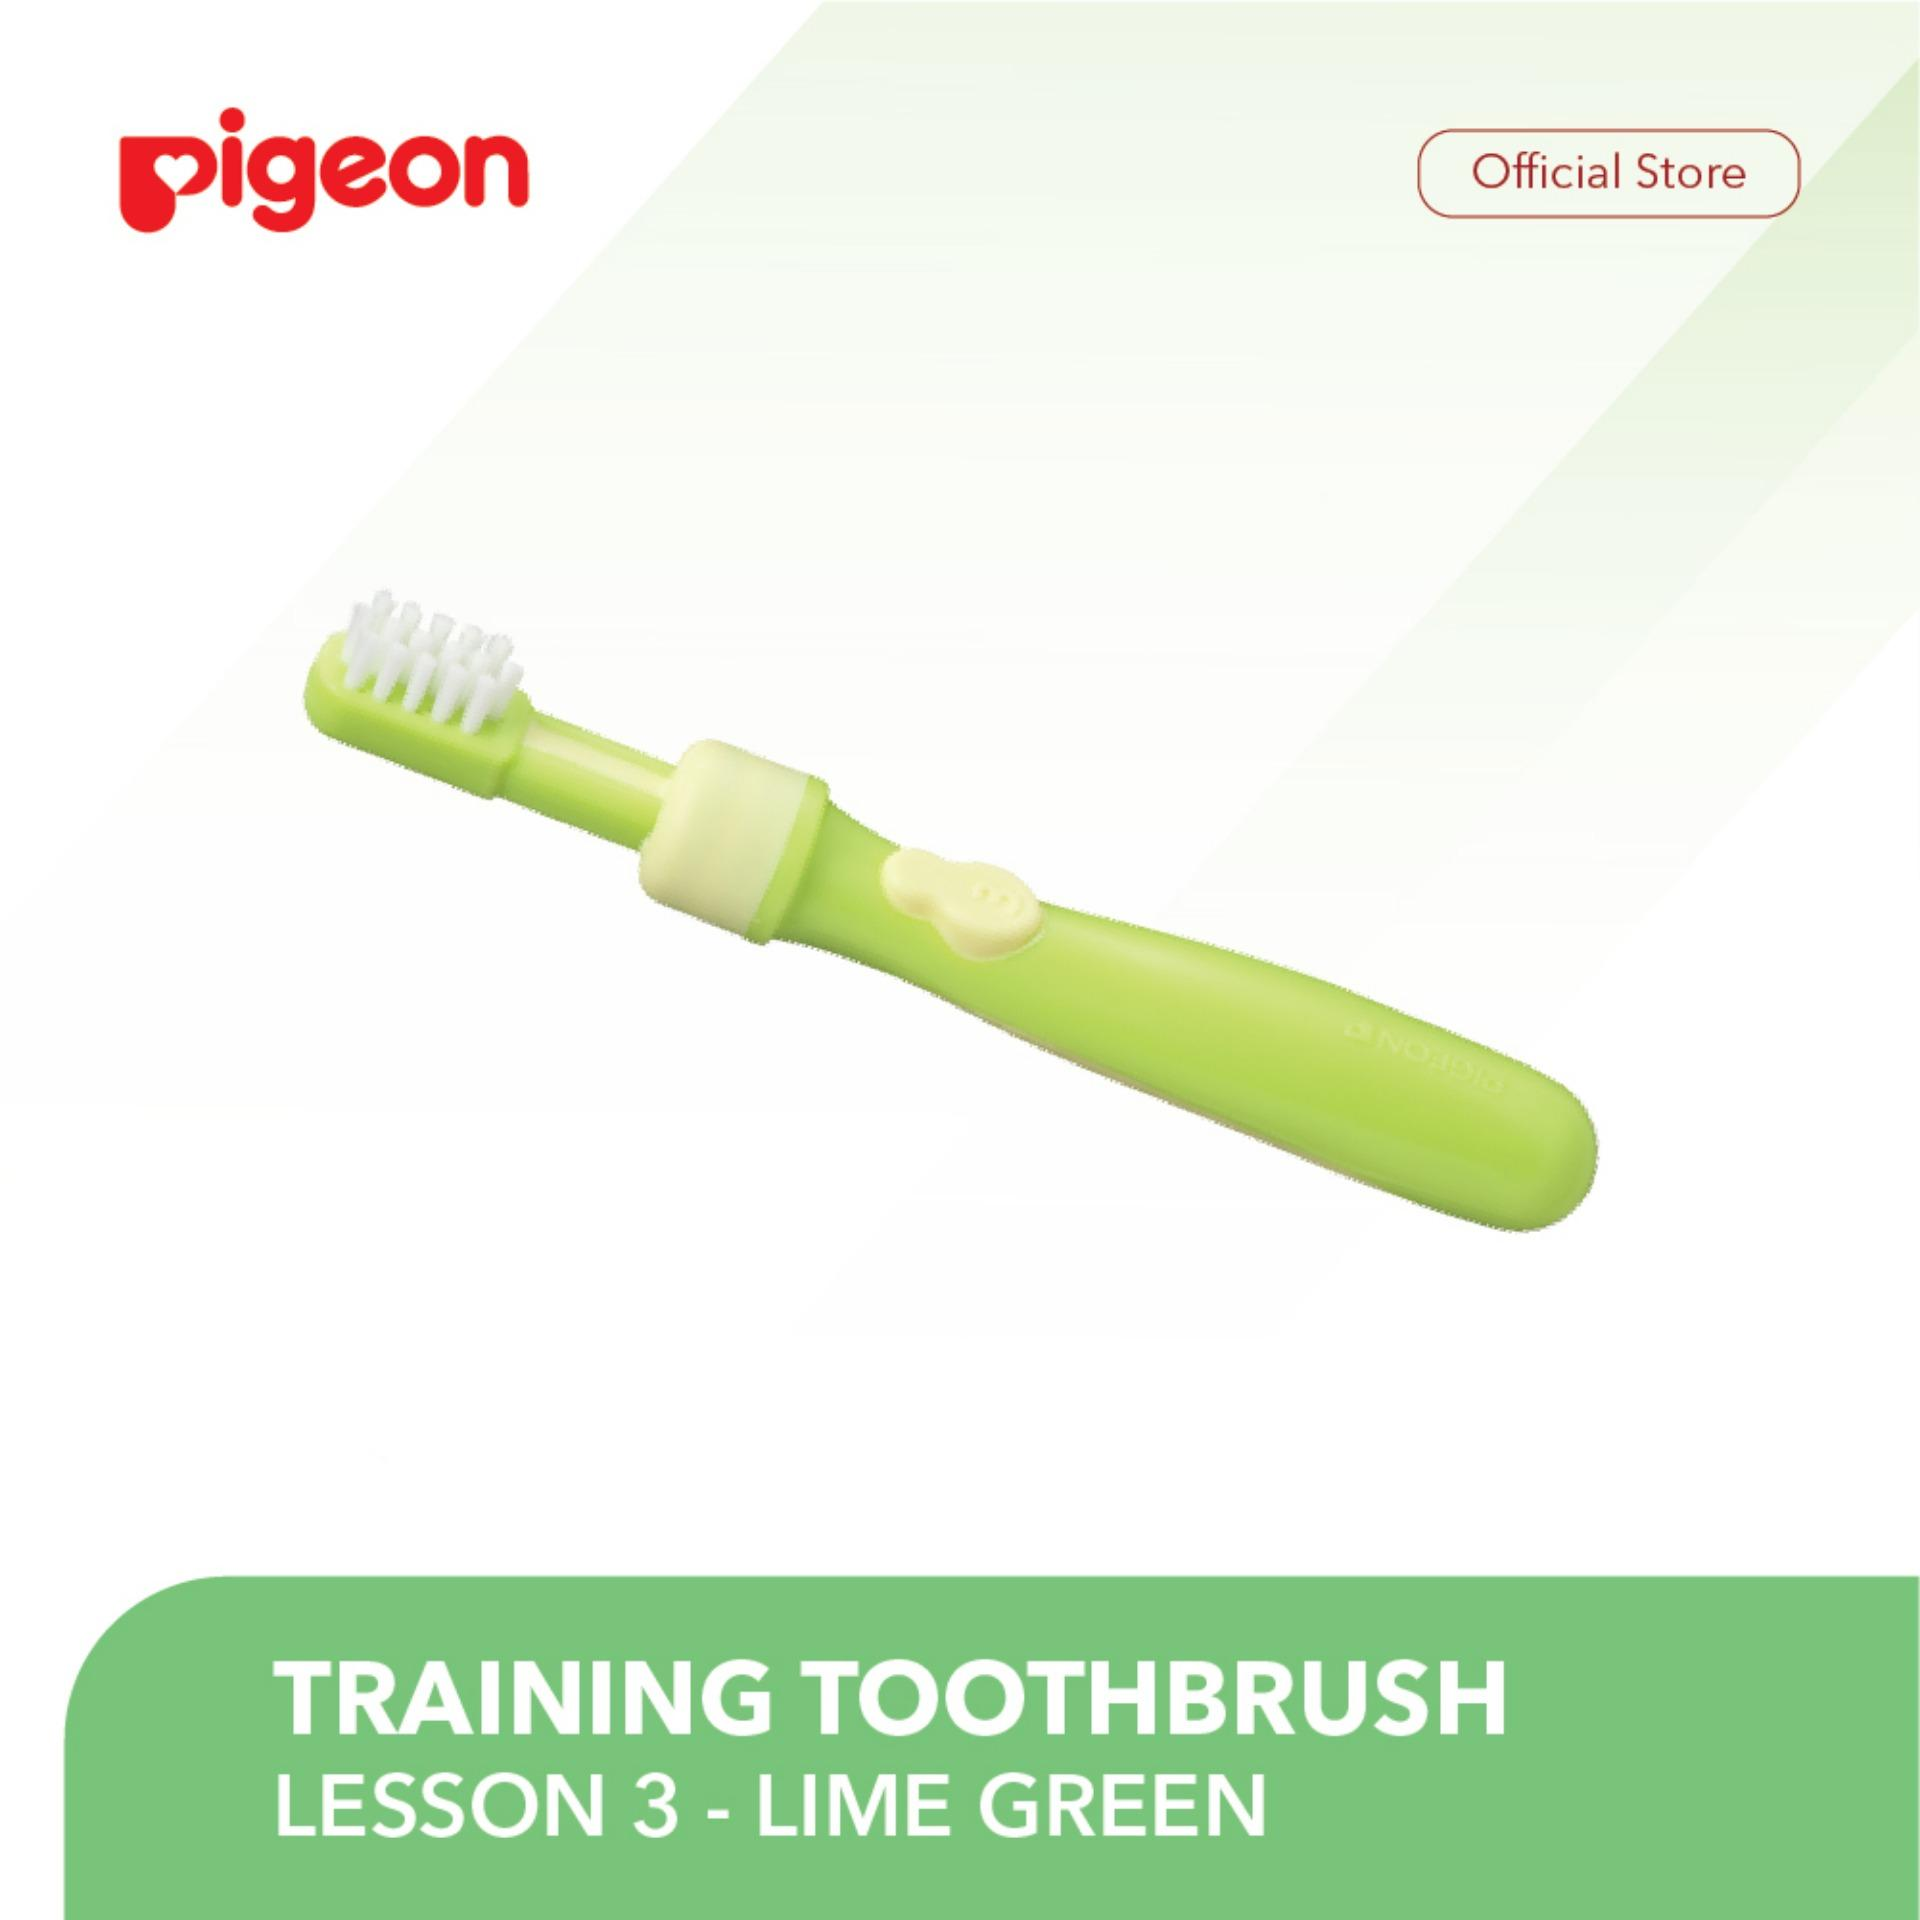 Pigeon Training Toothbrush Lesson-3 Lime Green / Sikat Gigi Bayi By Pigeon Indonesia.